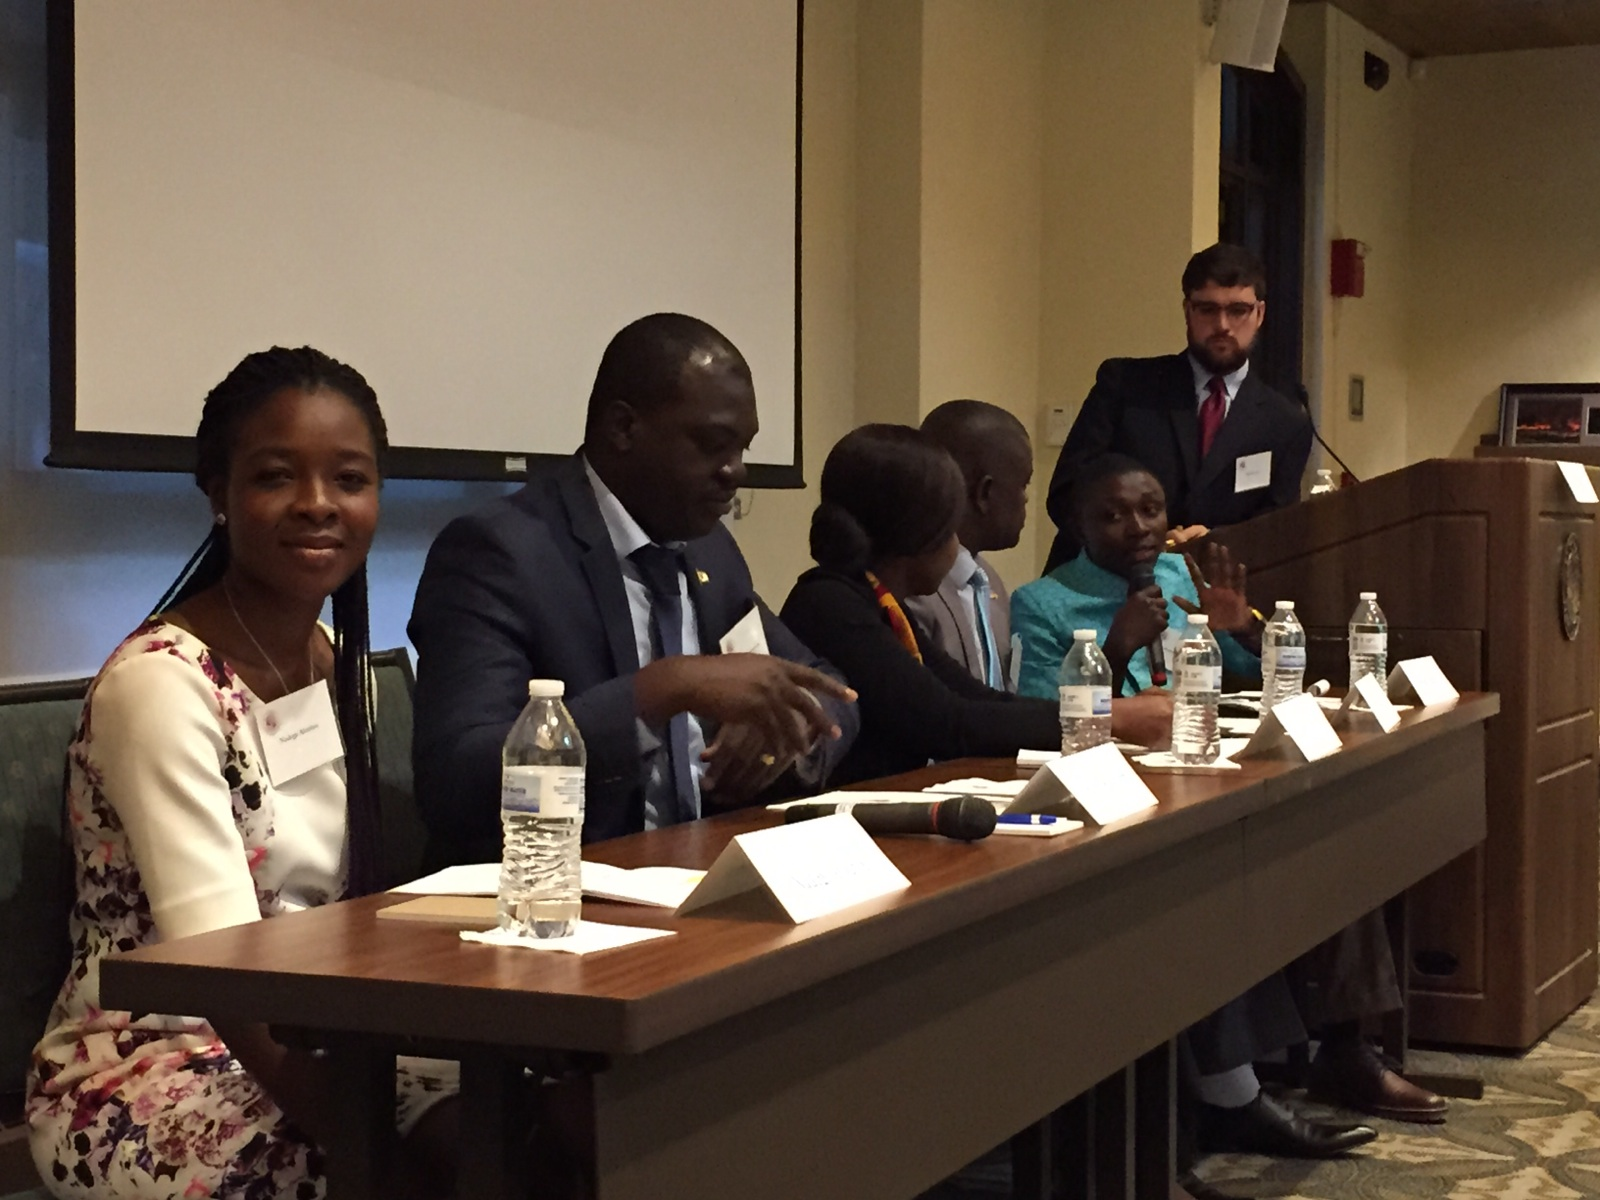 Panel on civic engagement in Africa at El Pomar Foundation